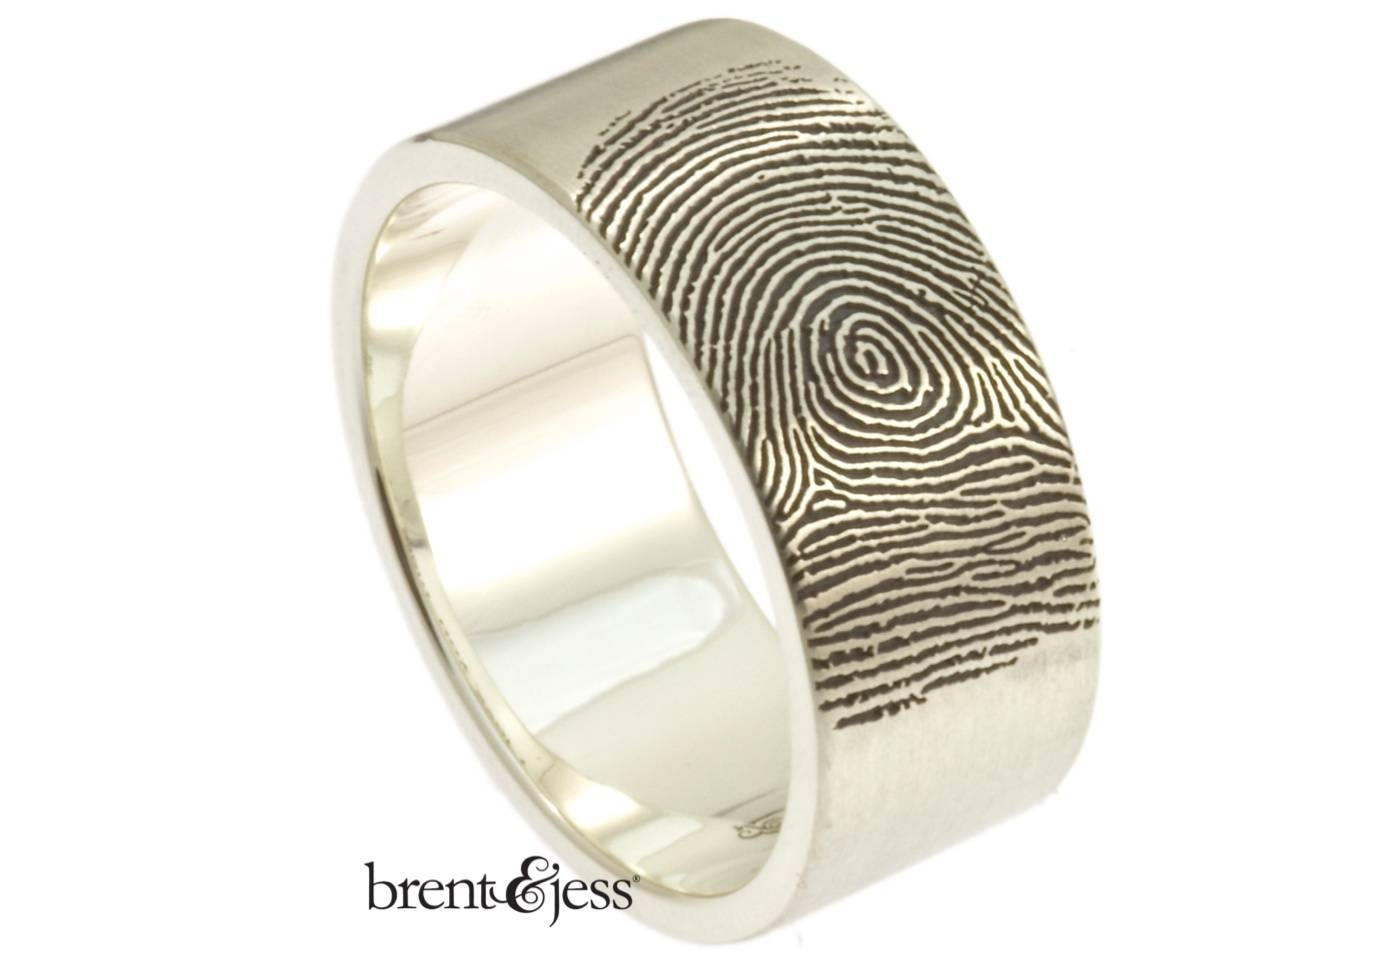 Modern Wedding Rings – Brent&jess Blog – A Spotlight On Our Throughout Contemporary Wedding Rings (Gallery 4 of 15)